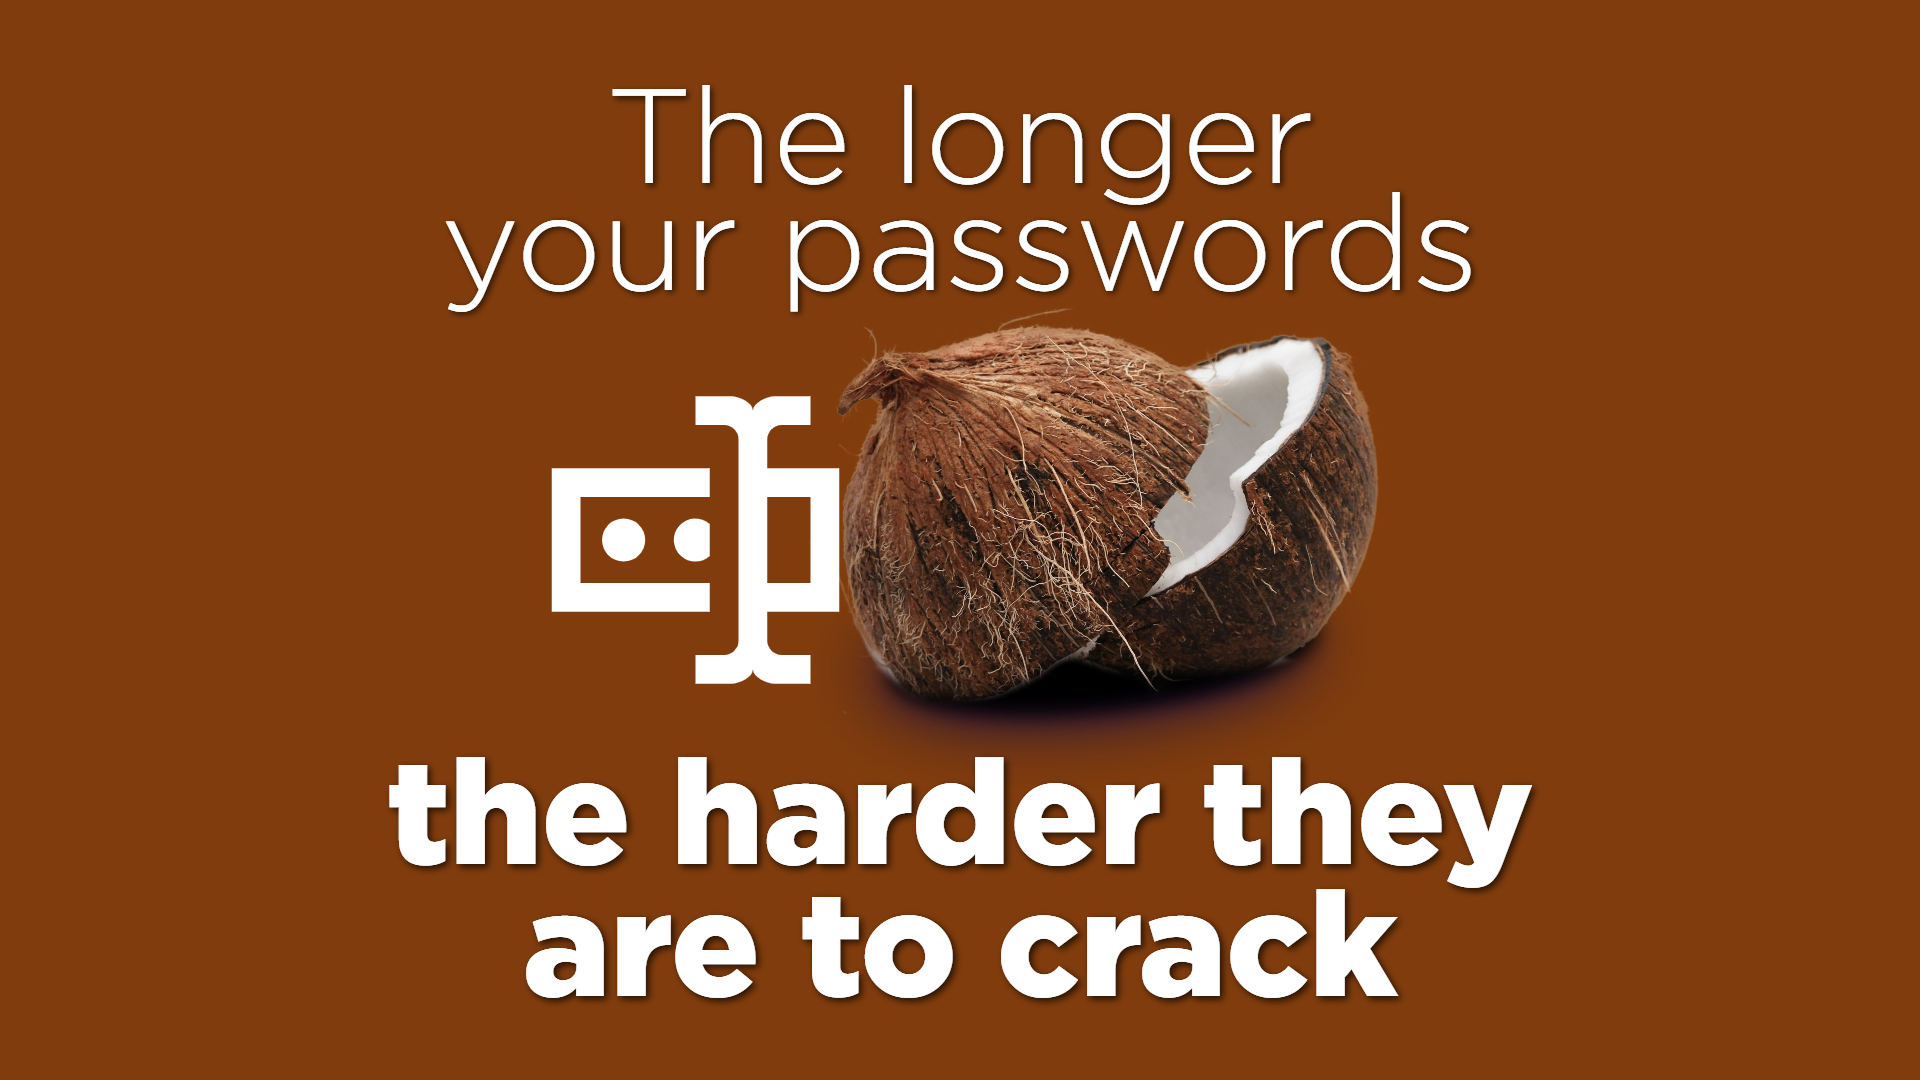 The Longer Your Passwords, The Harder They Are To Crack